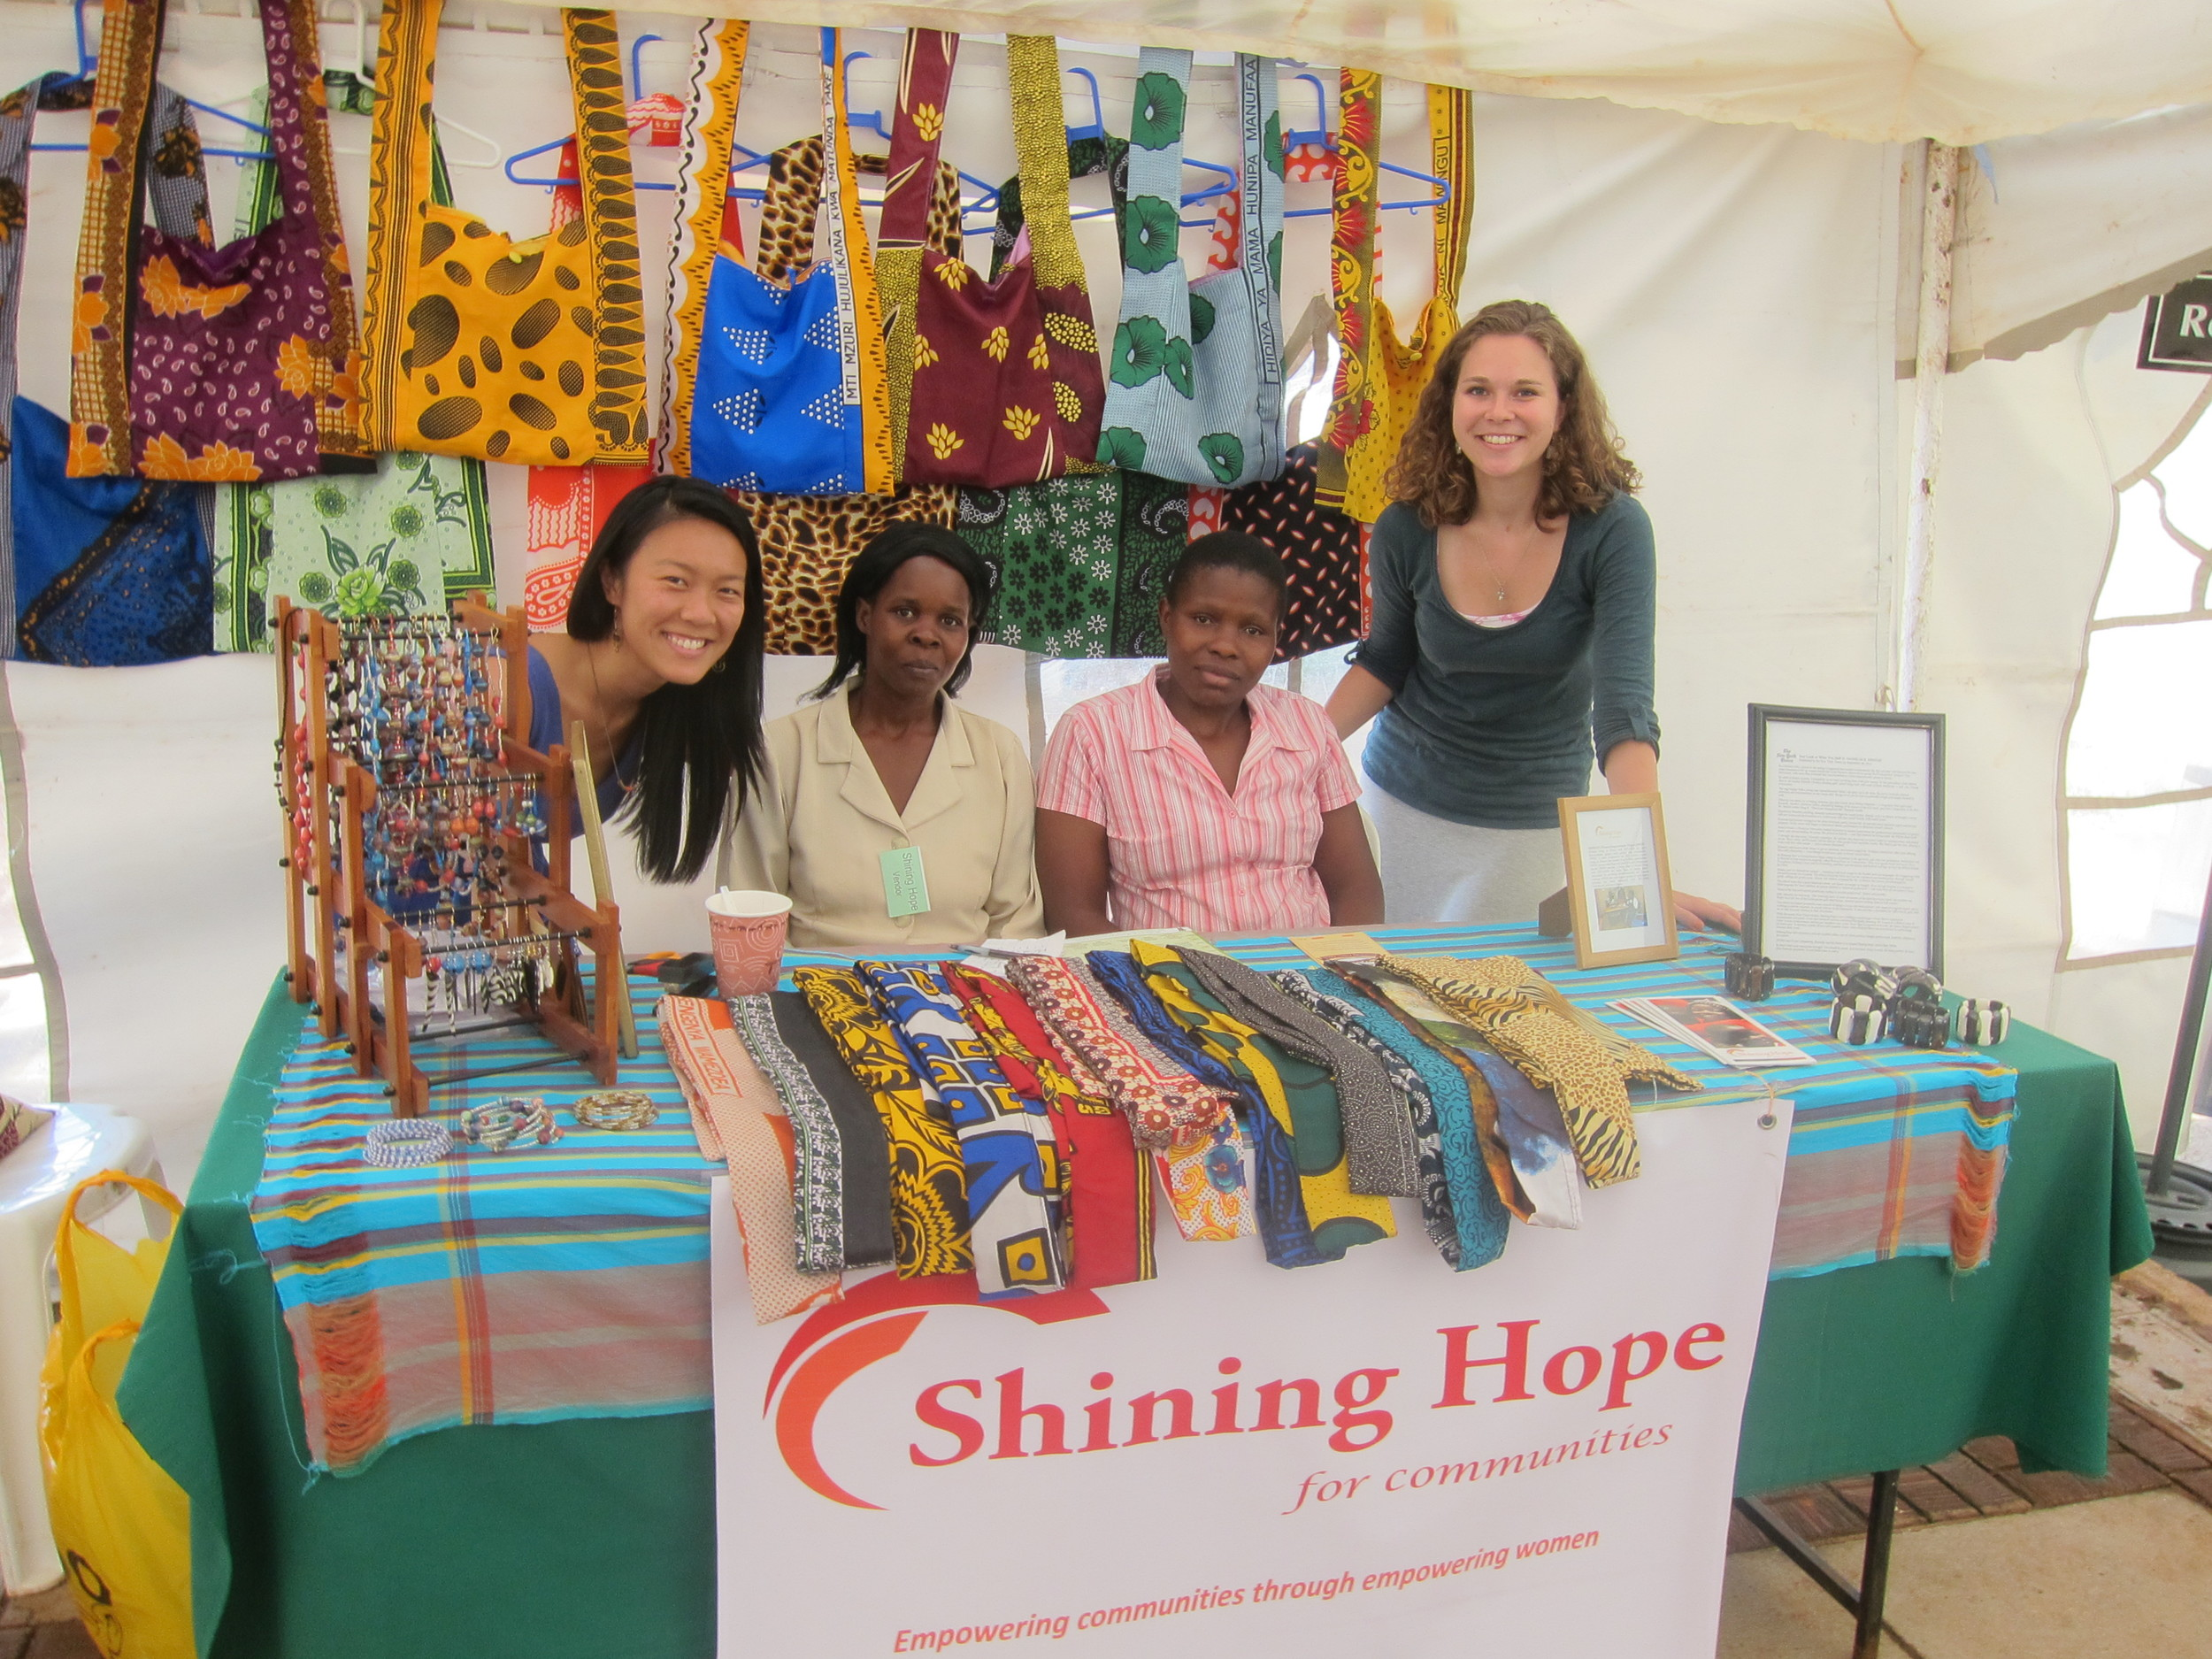 Xiaoxi, Shining Hope's Manager of Strategic Partnerships, along with Rose, Joan, and Jessica, a Shining Hope fellow